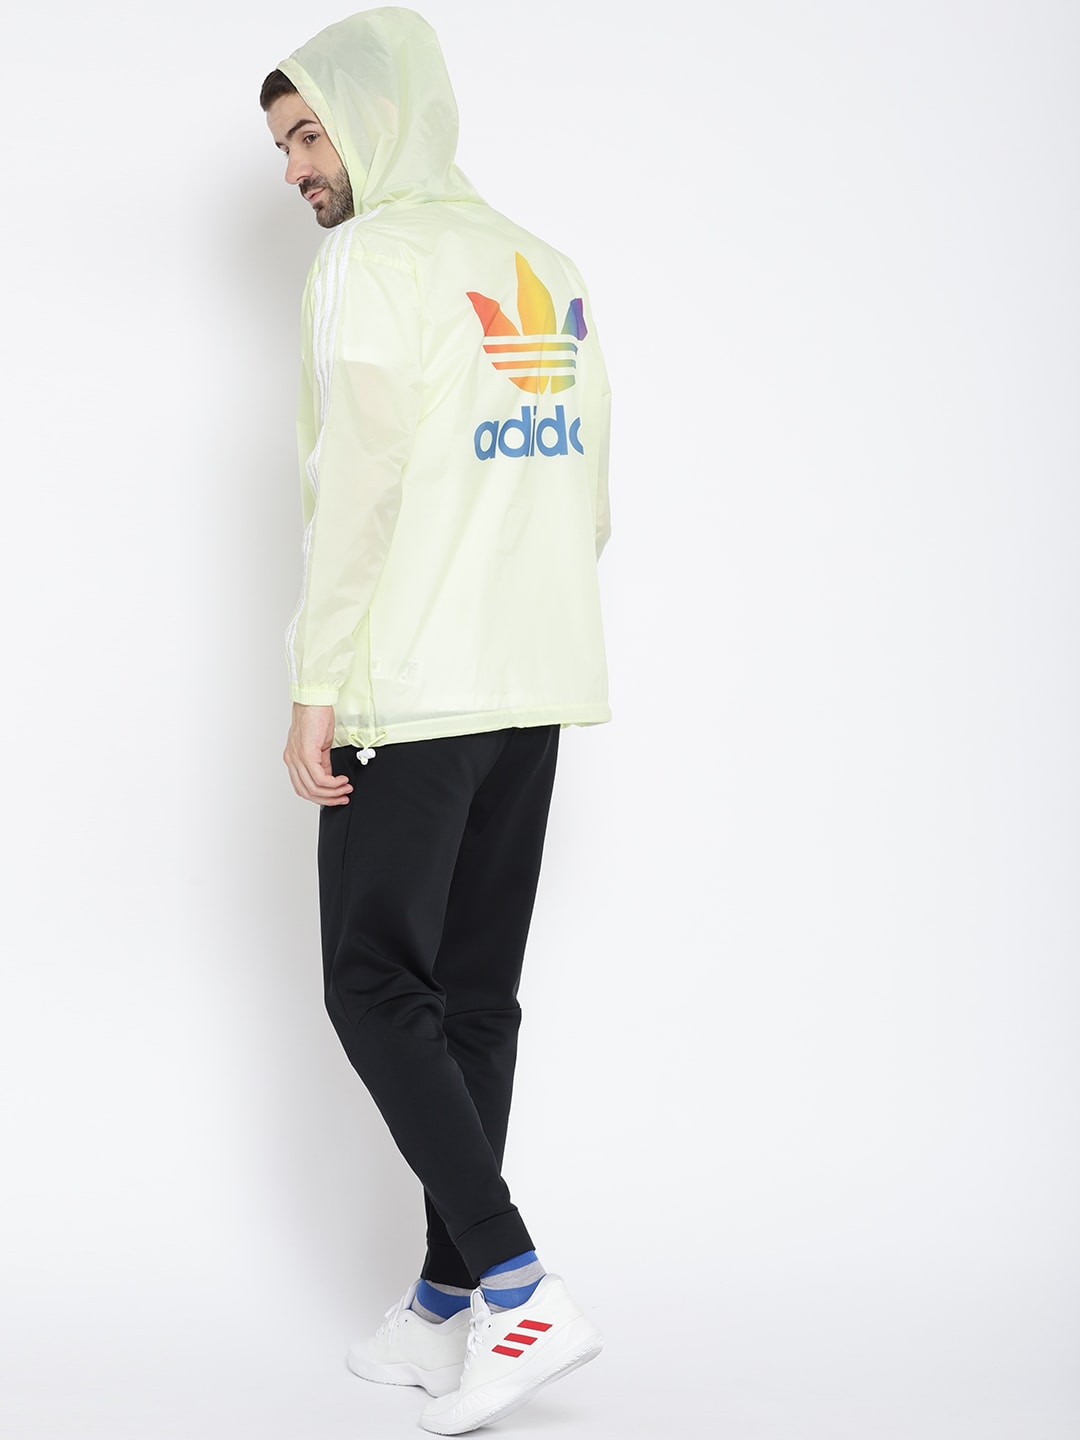 dbbbcd11178f0 Rf Adidas Jackets Scarves - Buy Rf Adidas Jackets Scarves online in India